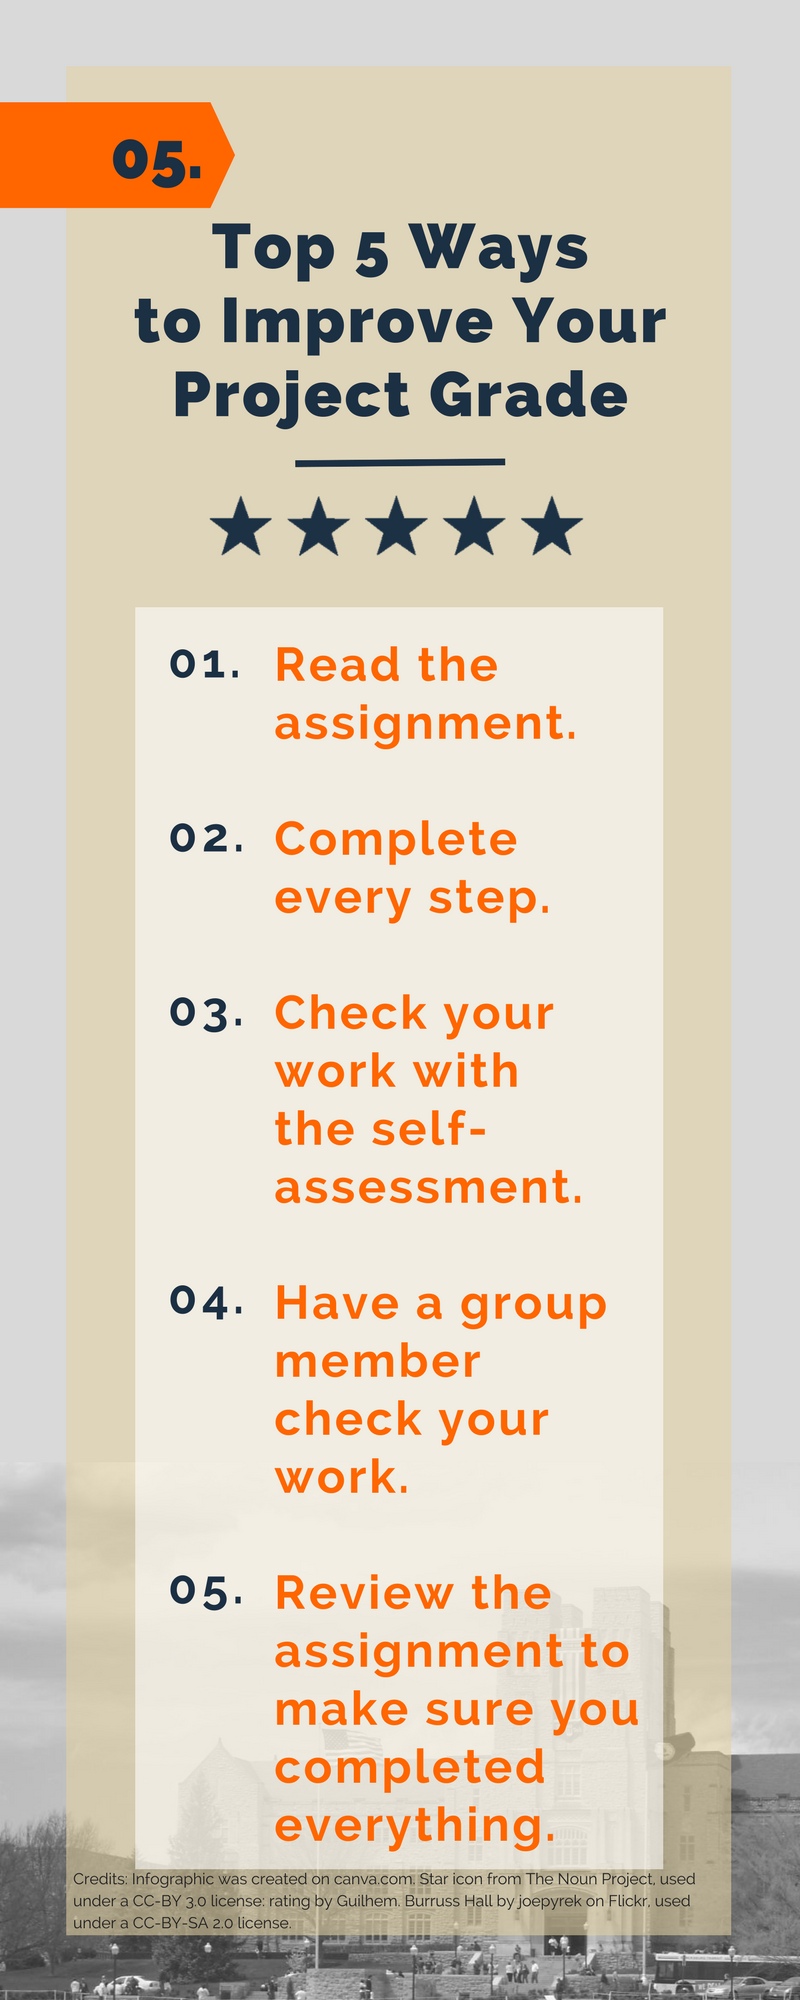 Top 5 Ways to Improve Your Project Grade: (1) Read the assignment. (2) Complete every step. (3) Check your work with the self-assessment. (4) Have a group member check your work. (5) Review the assignment to make sure you completed everything.